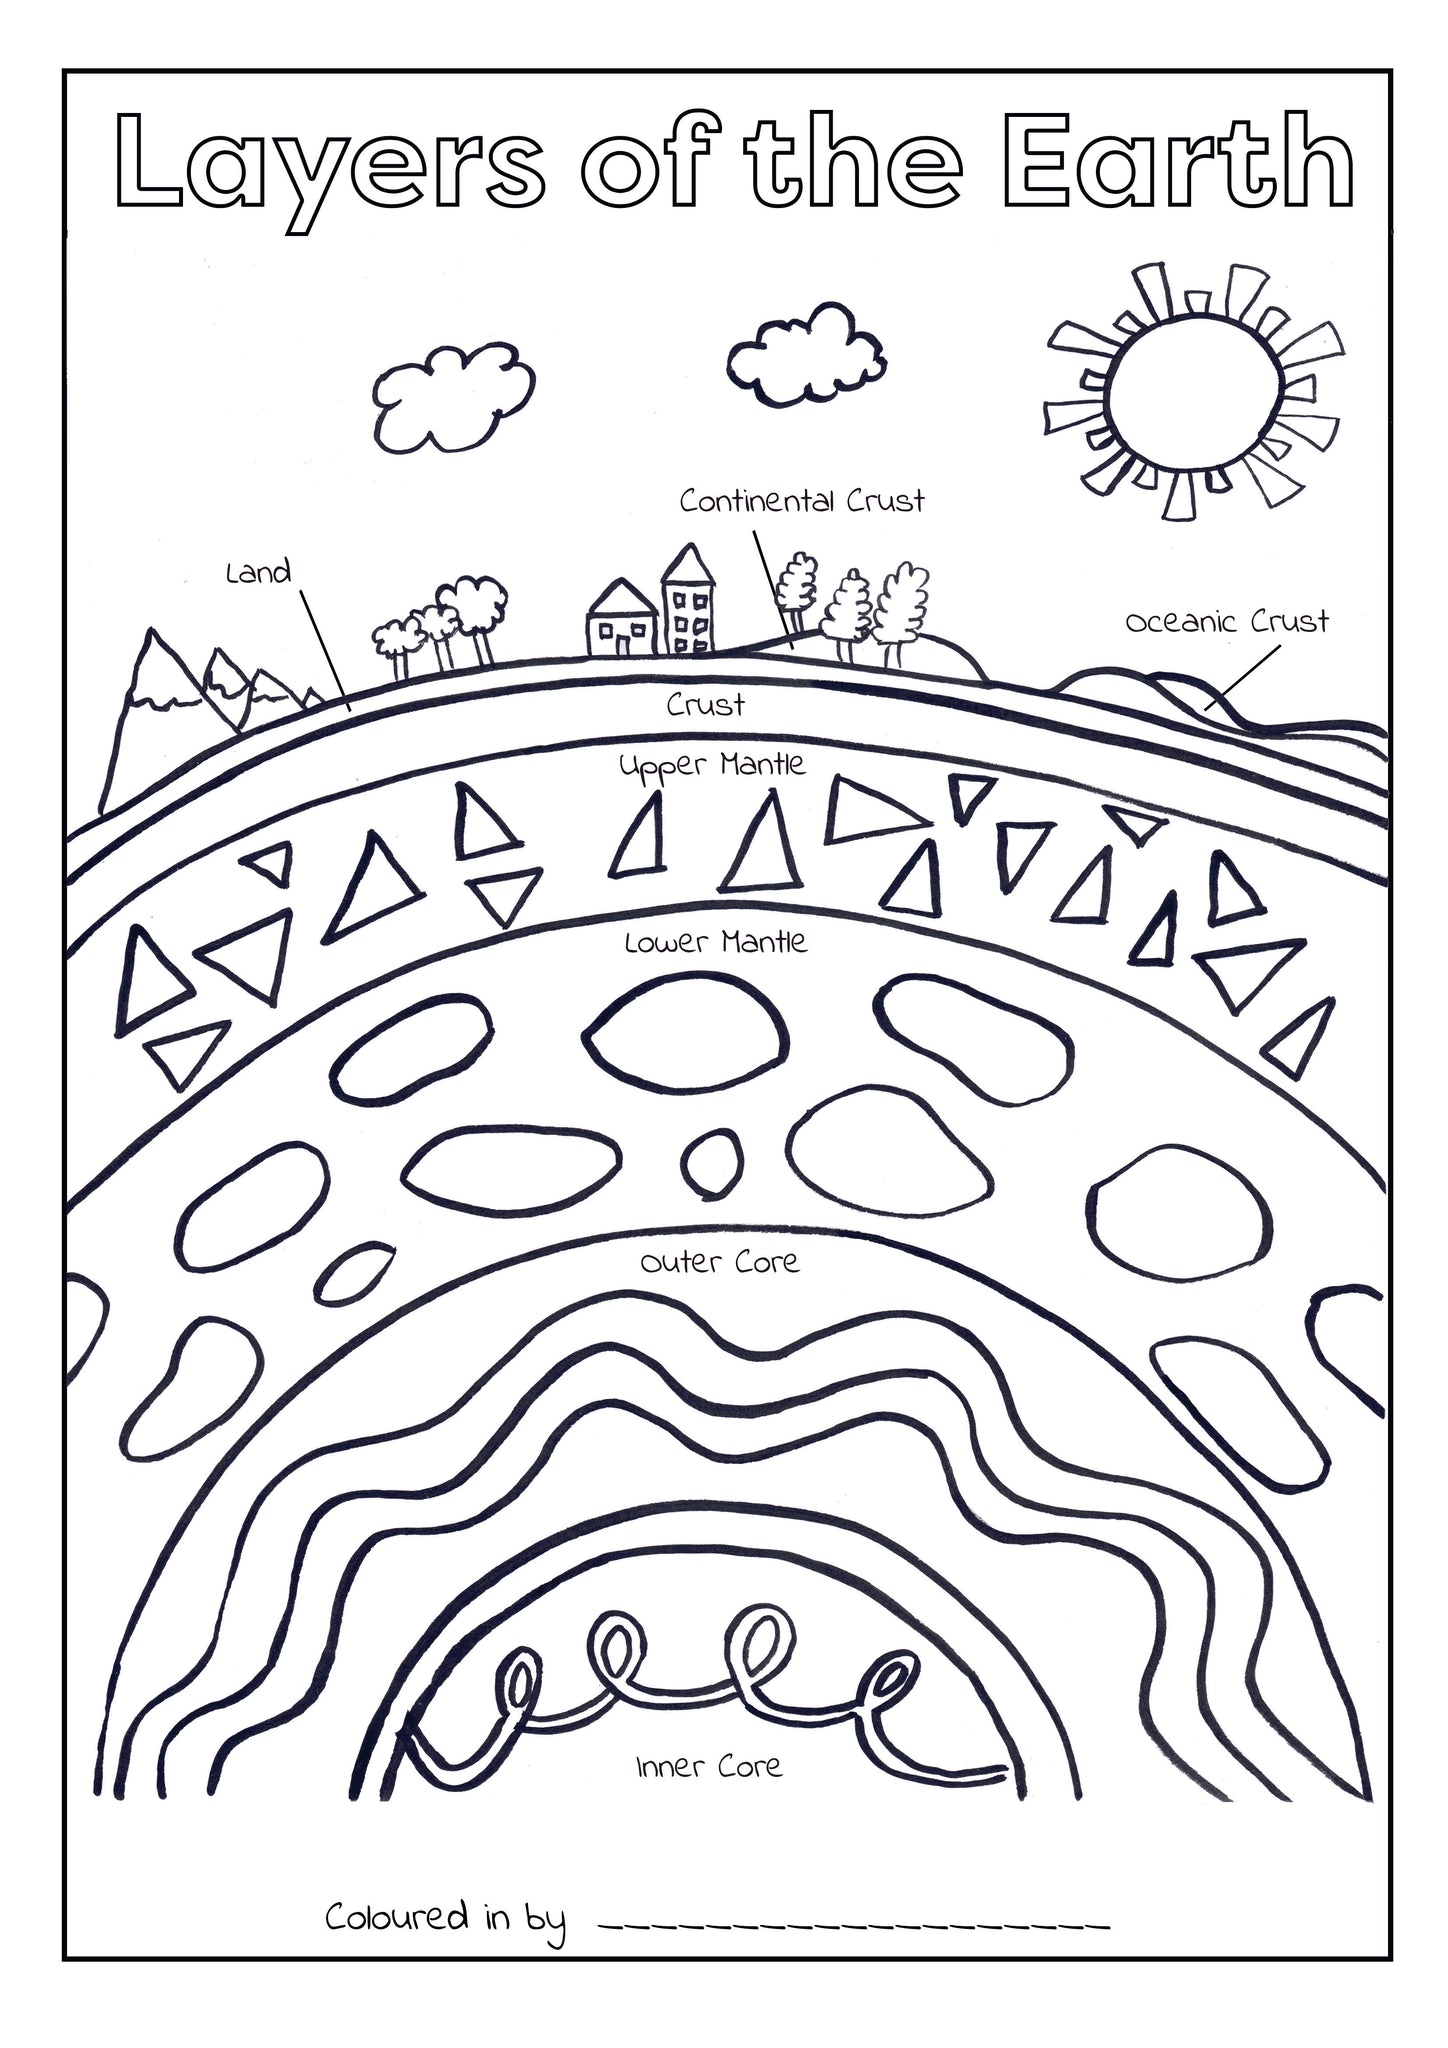 Layers of the Earth Colouring Printable (Download & Print & Post)